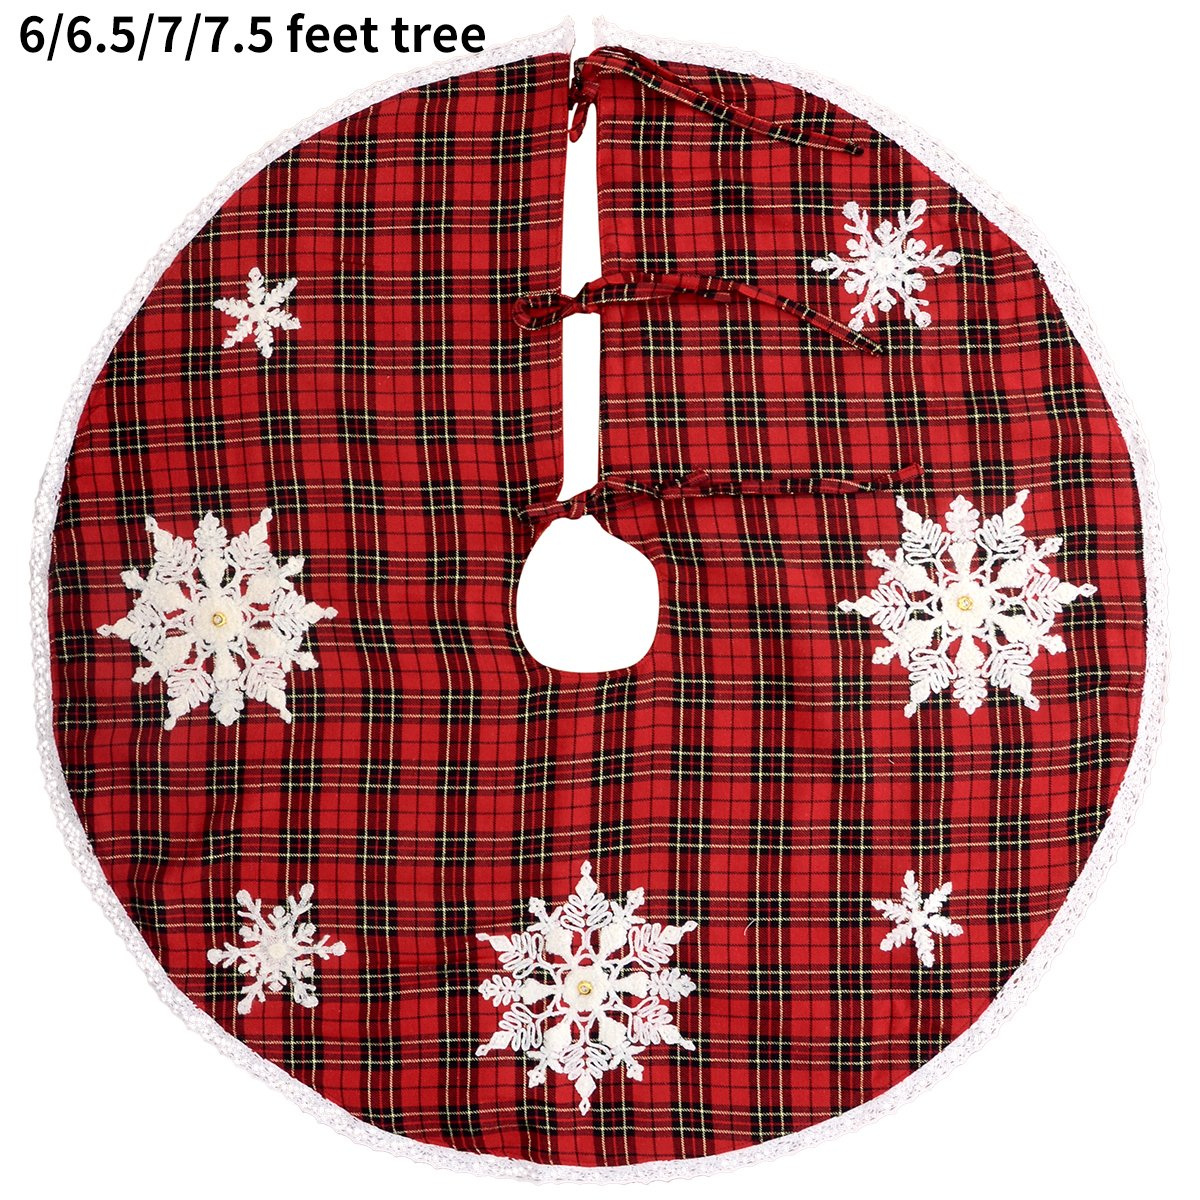 GRELUCGO Embroidered Snowflake Christmas Holiday Tree Skirt Double Thickness Red and Black Buffalo Plaid Baishuo Round 54 Inch